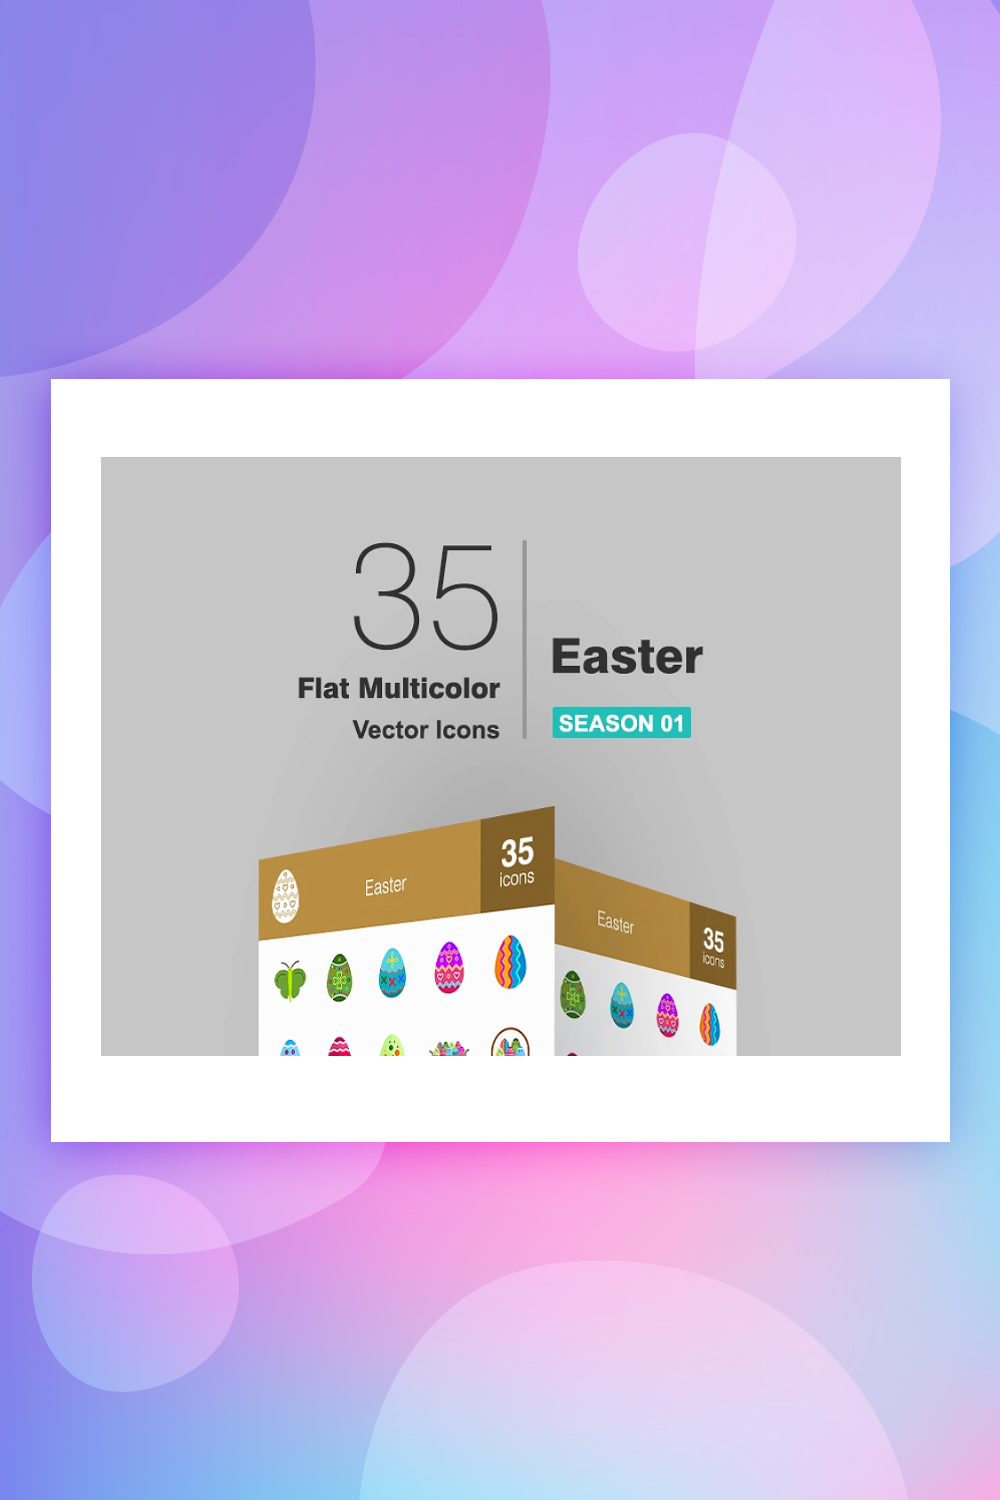 35 Easter Flat Multicolor Iconset Template